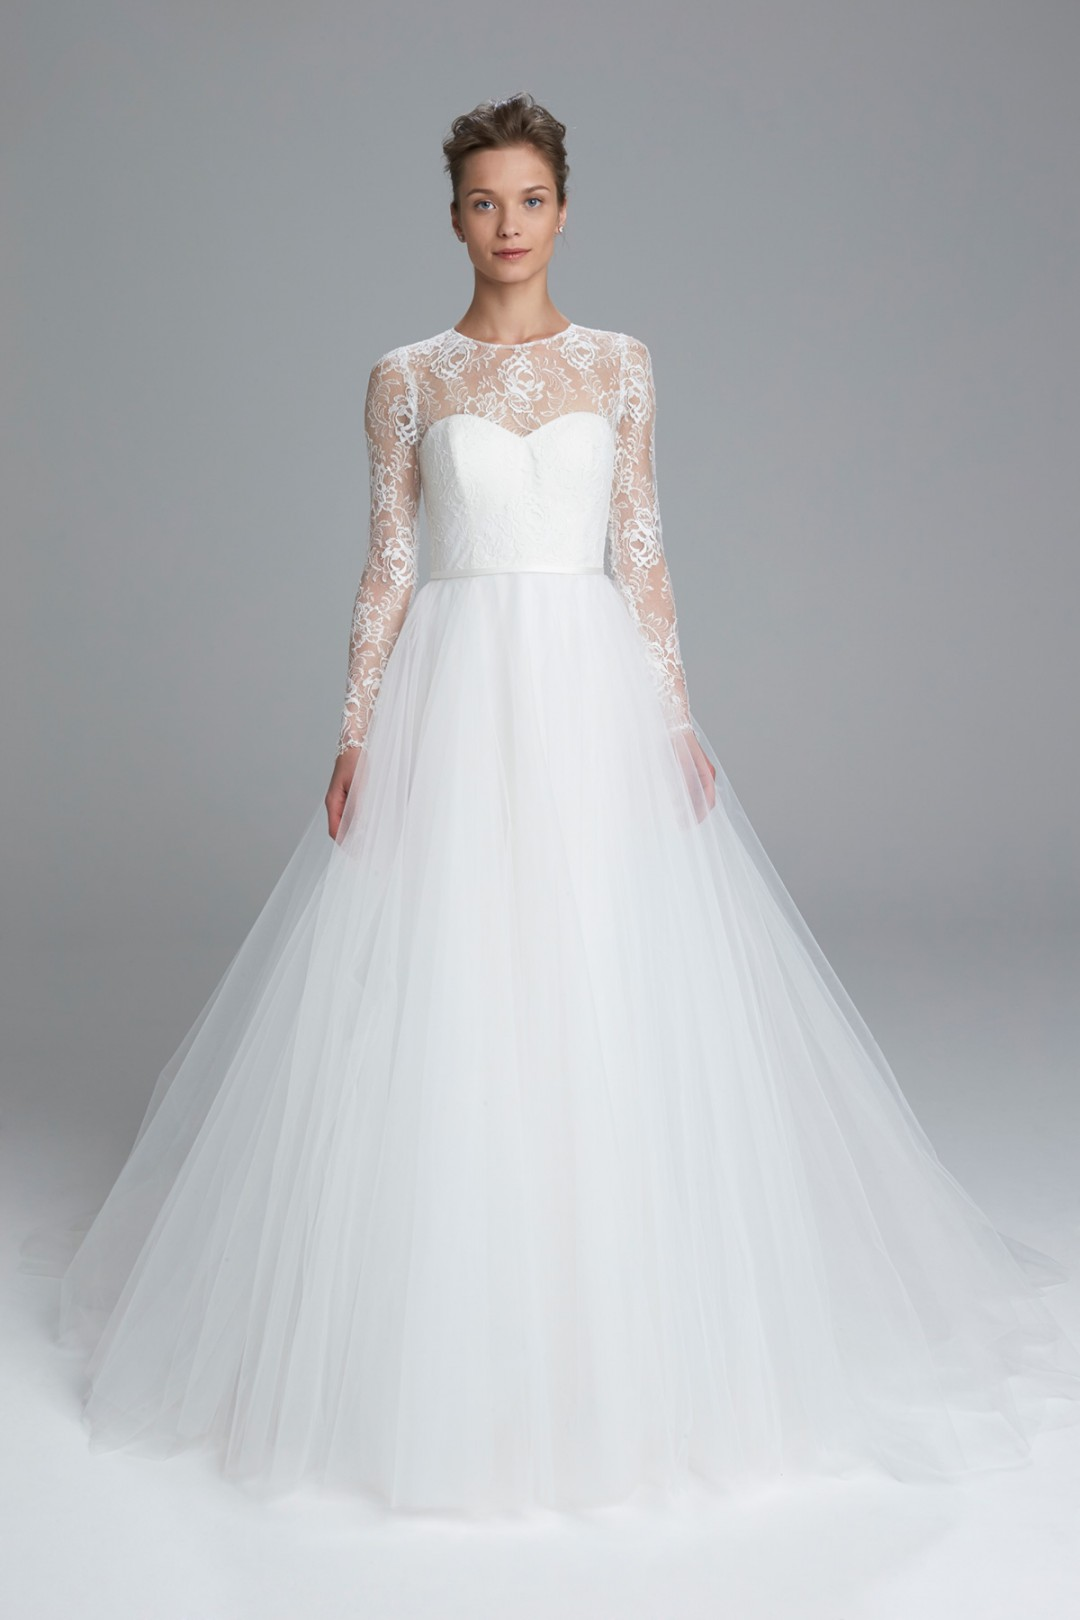 Long-sleeve-chantilly-lace-bridal-ballgown-with-tulle-skirt_Myra-by-Amsale-1080x1620.jpg